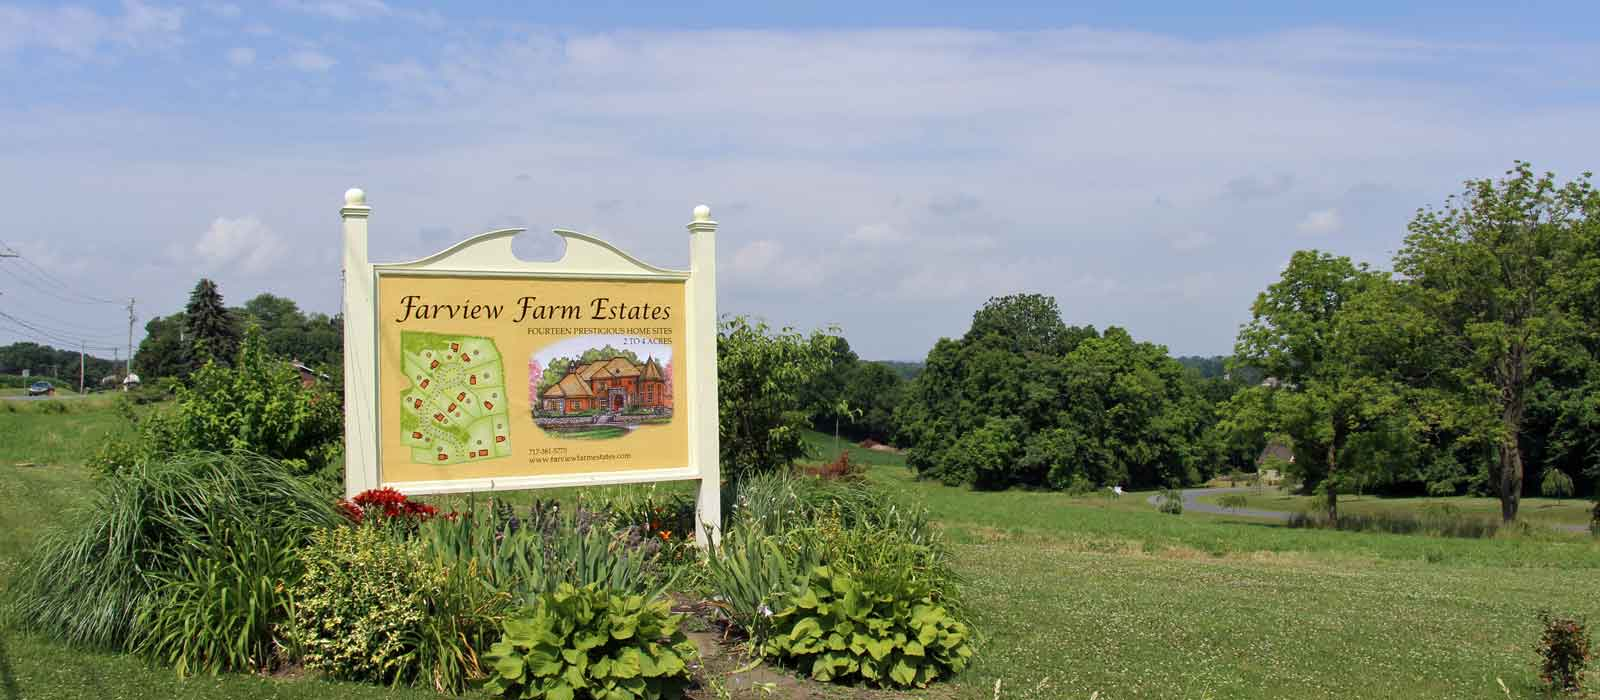 Farview Farm Estates, Lancaster PA